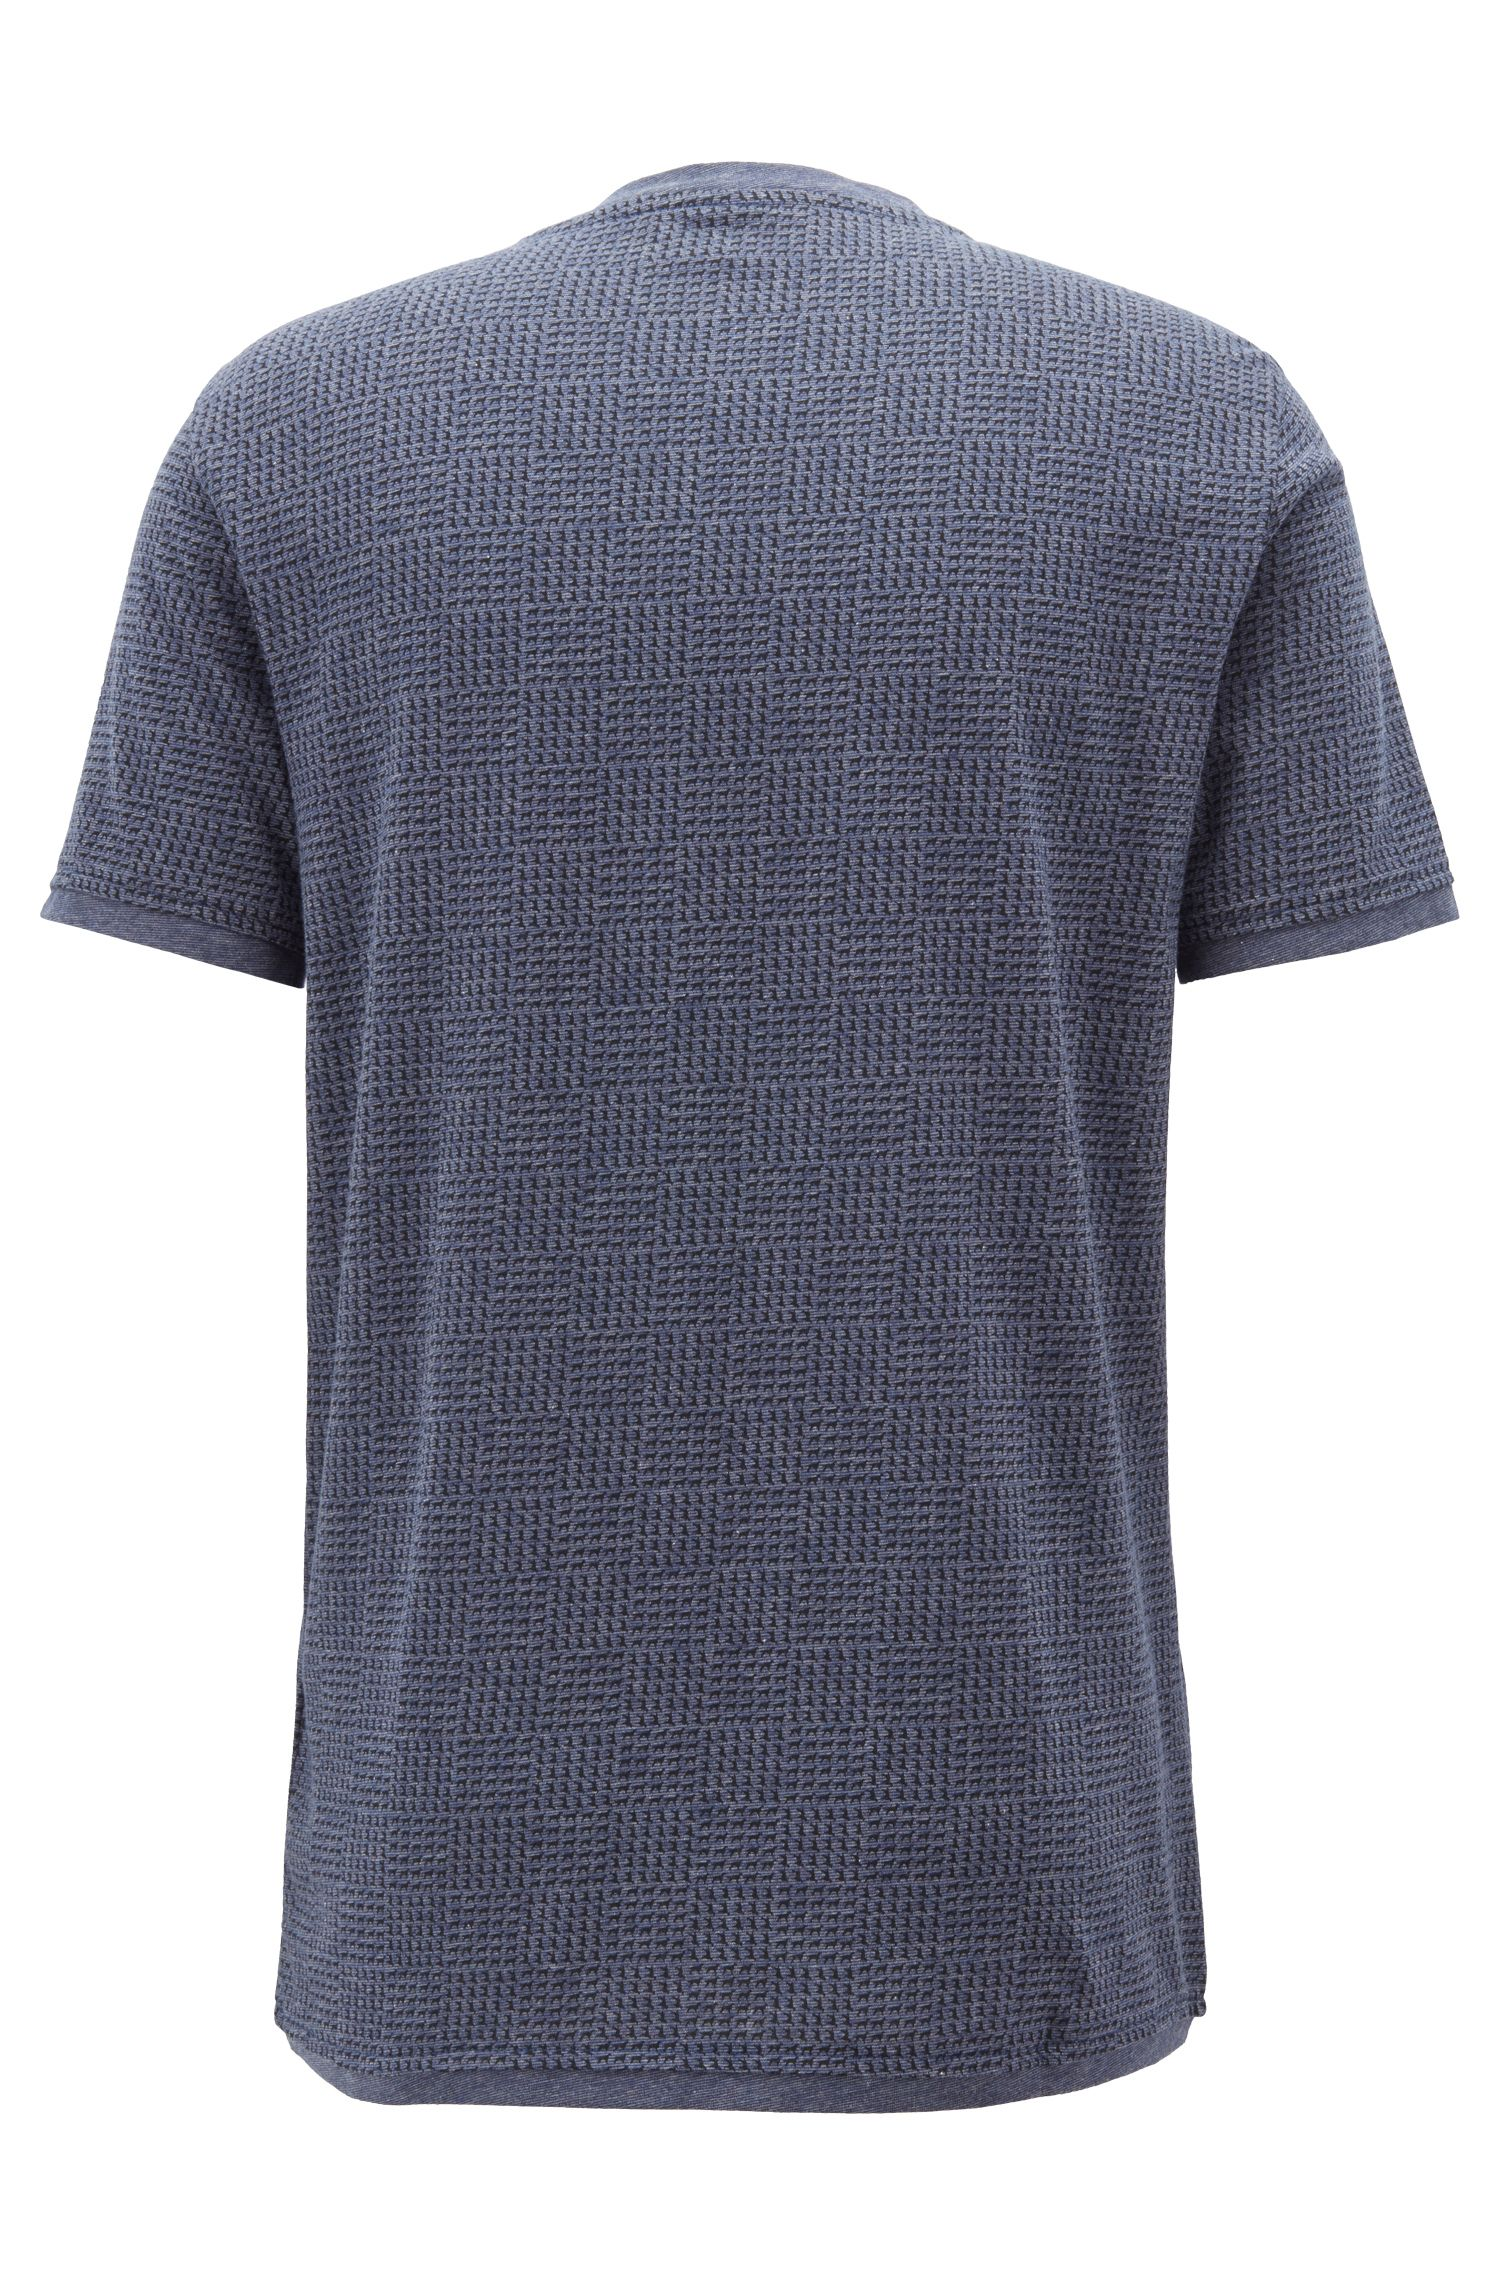 Crew-neck T-shirt in cotton with all-over print